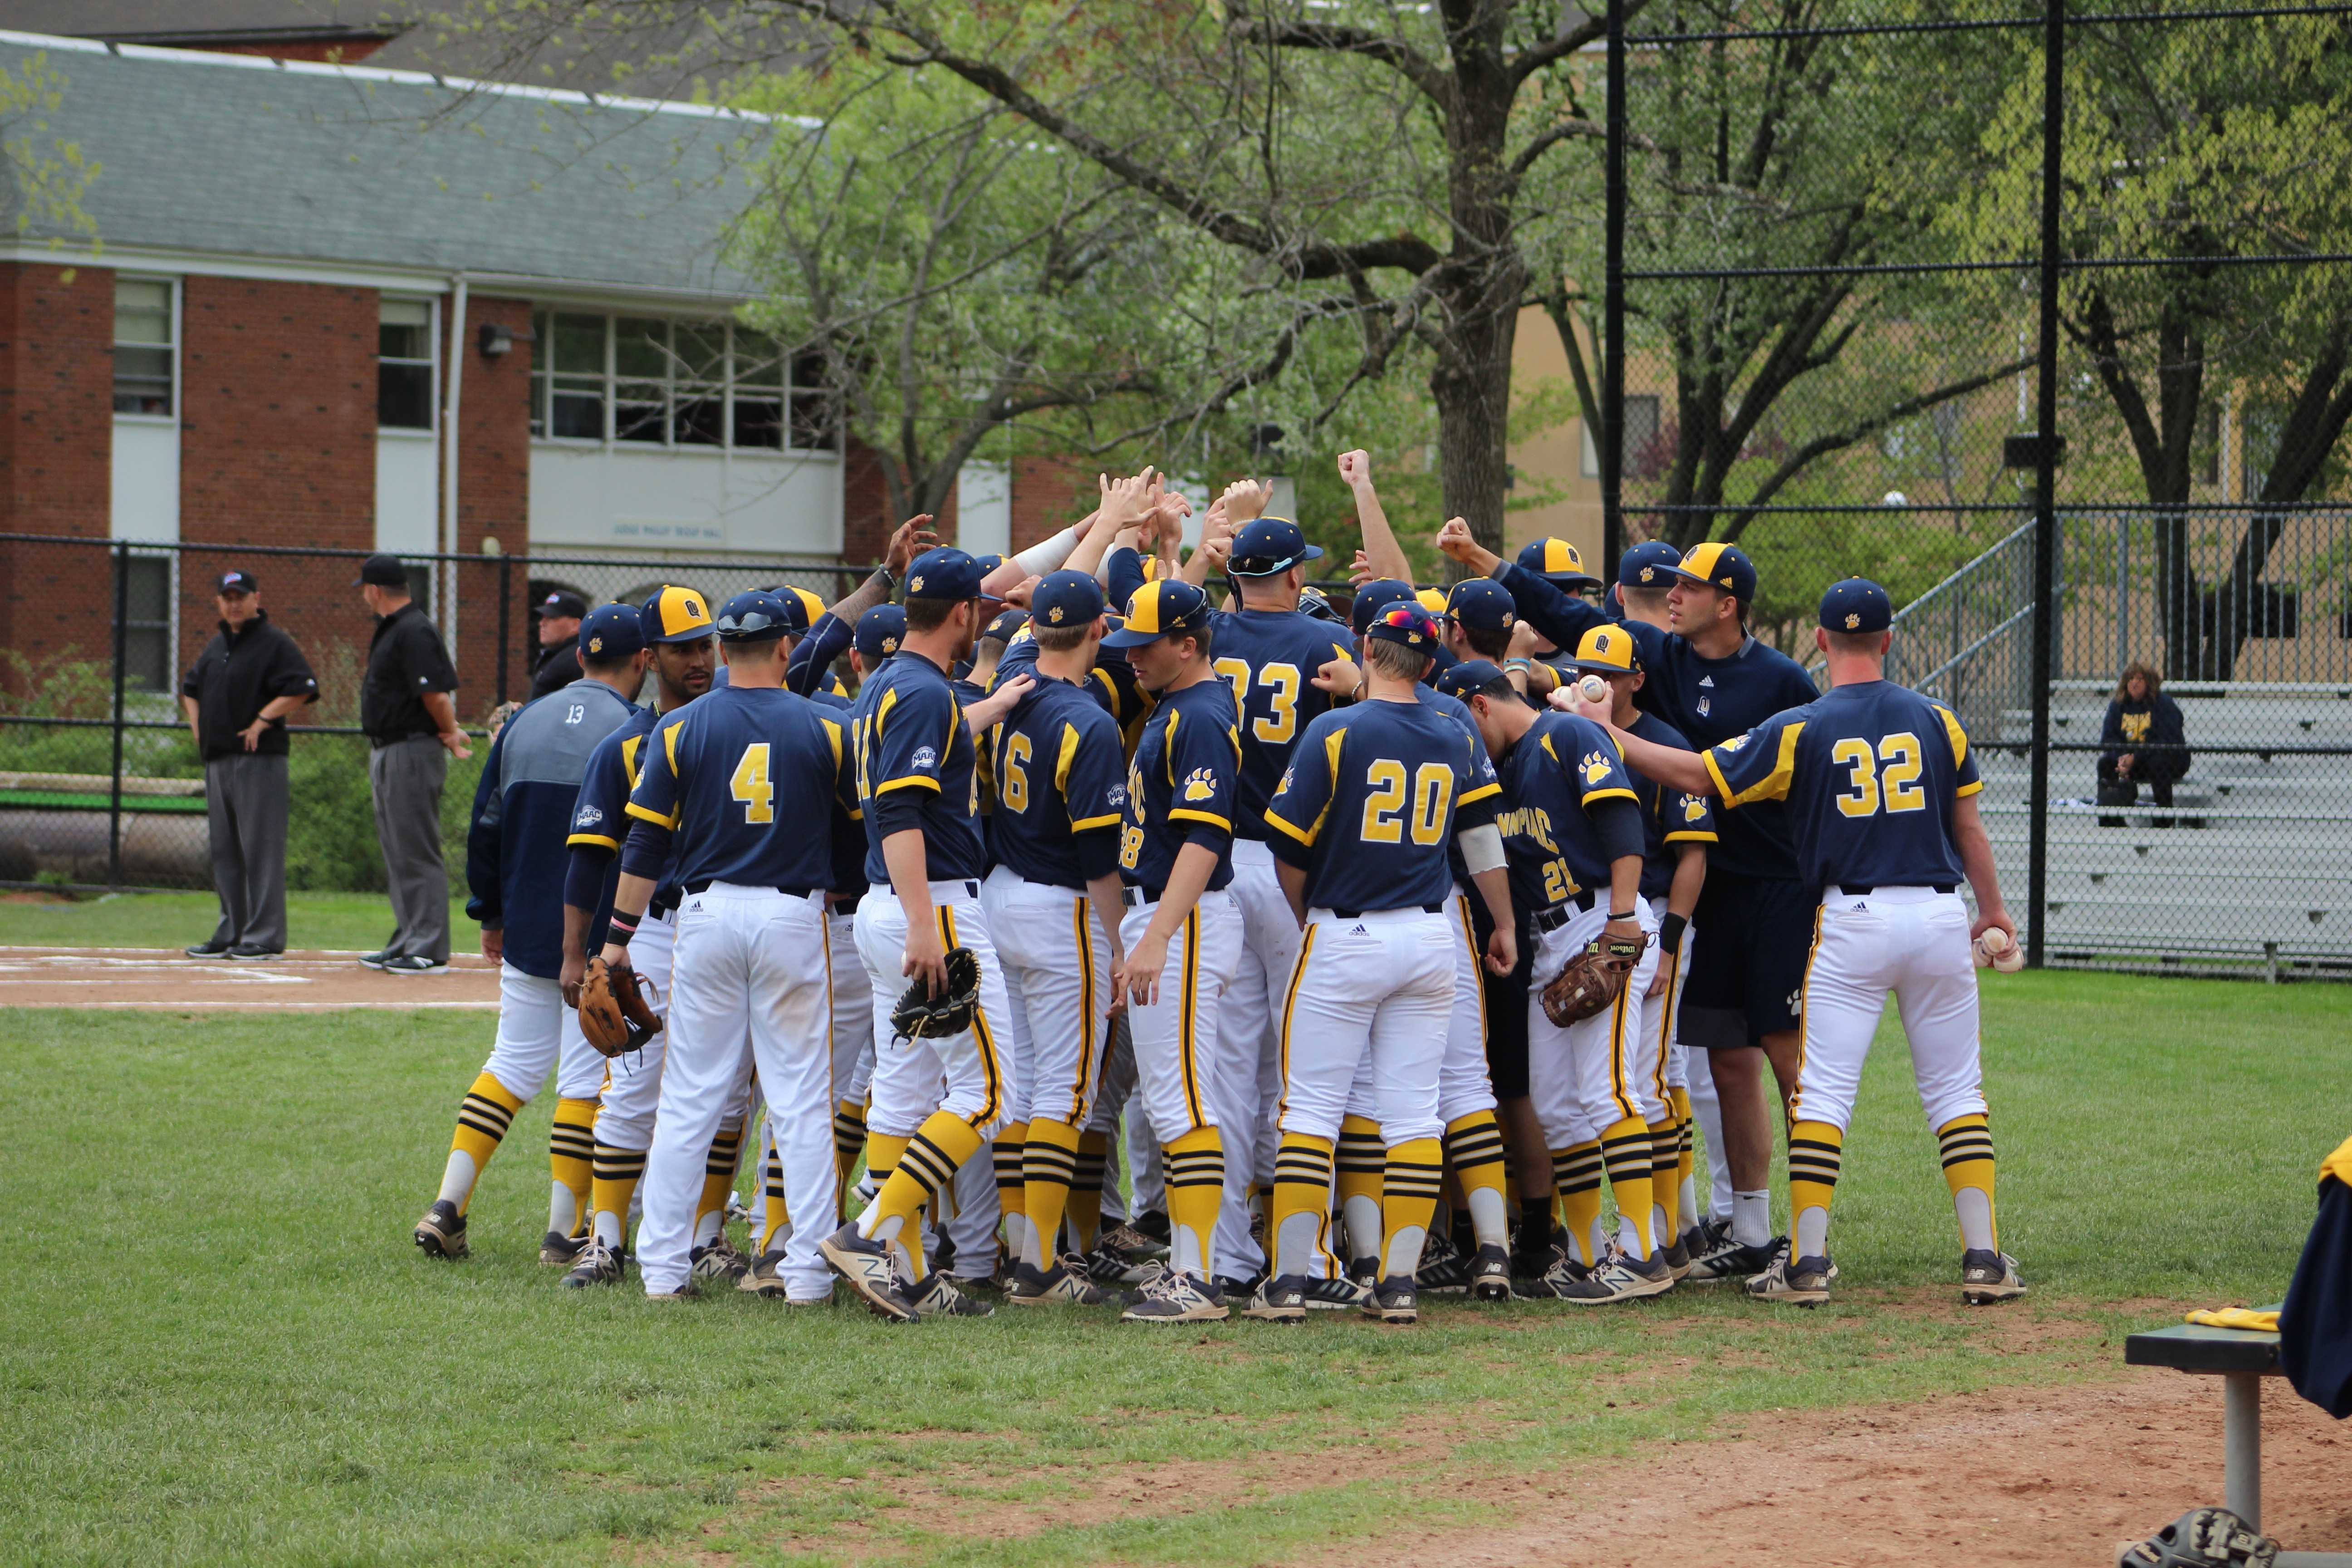 Quinnipiac baseball splits doubleheader with Canisius